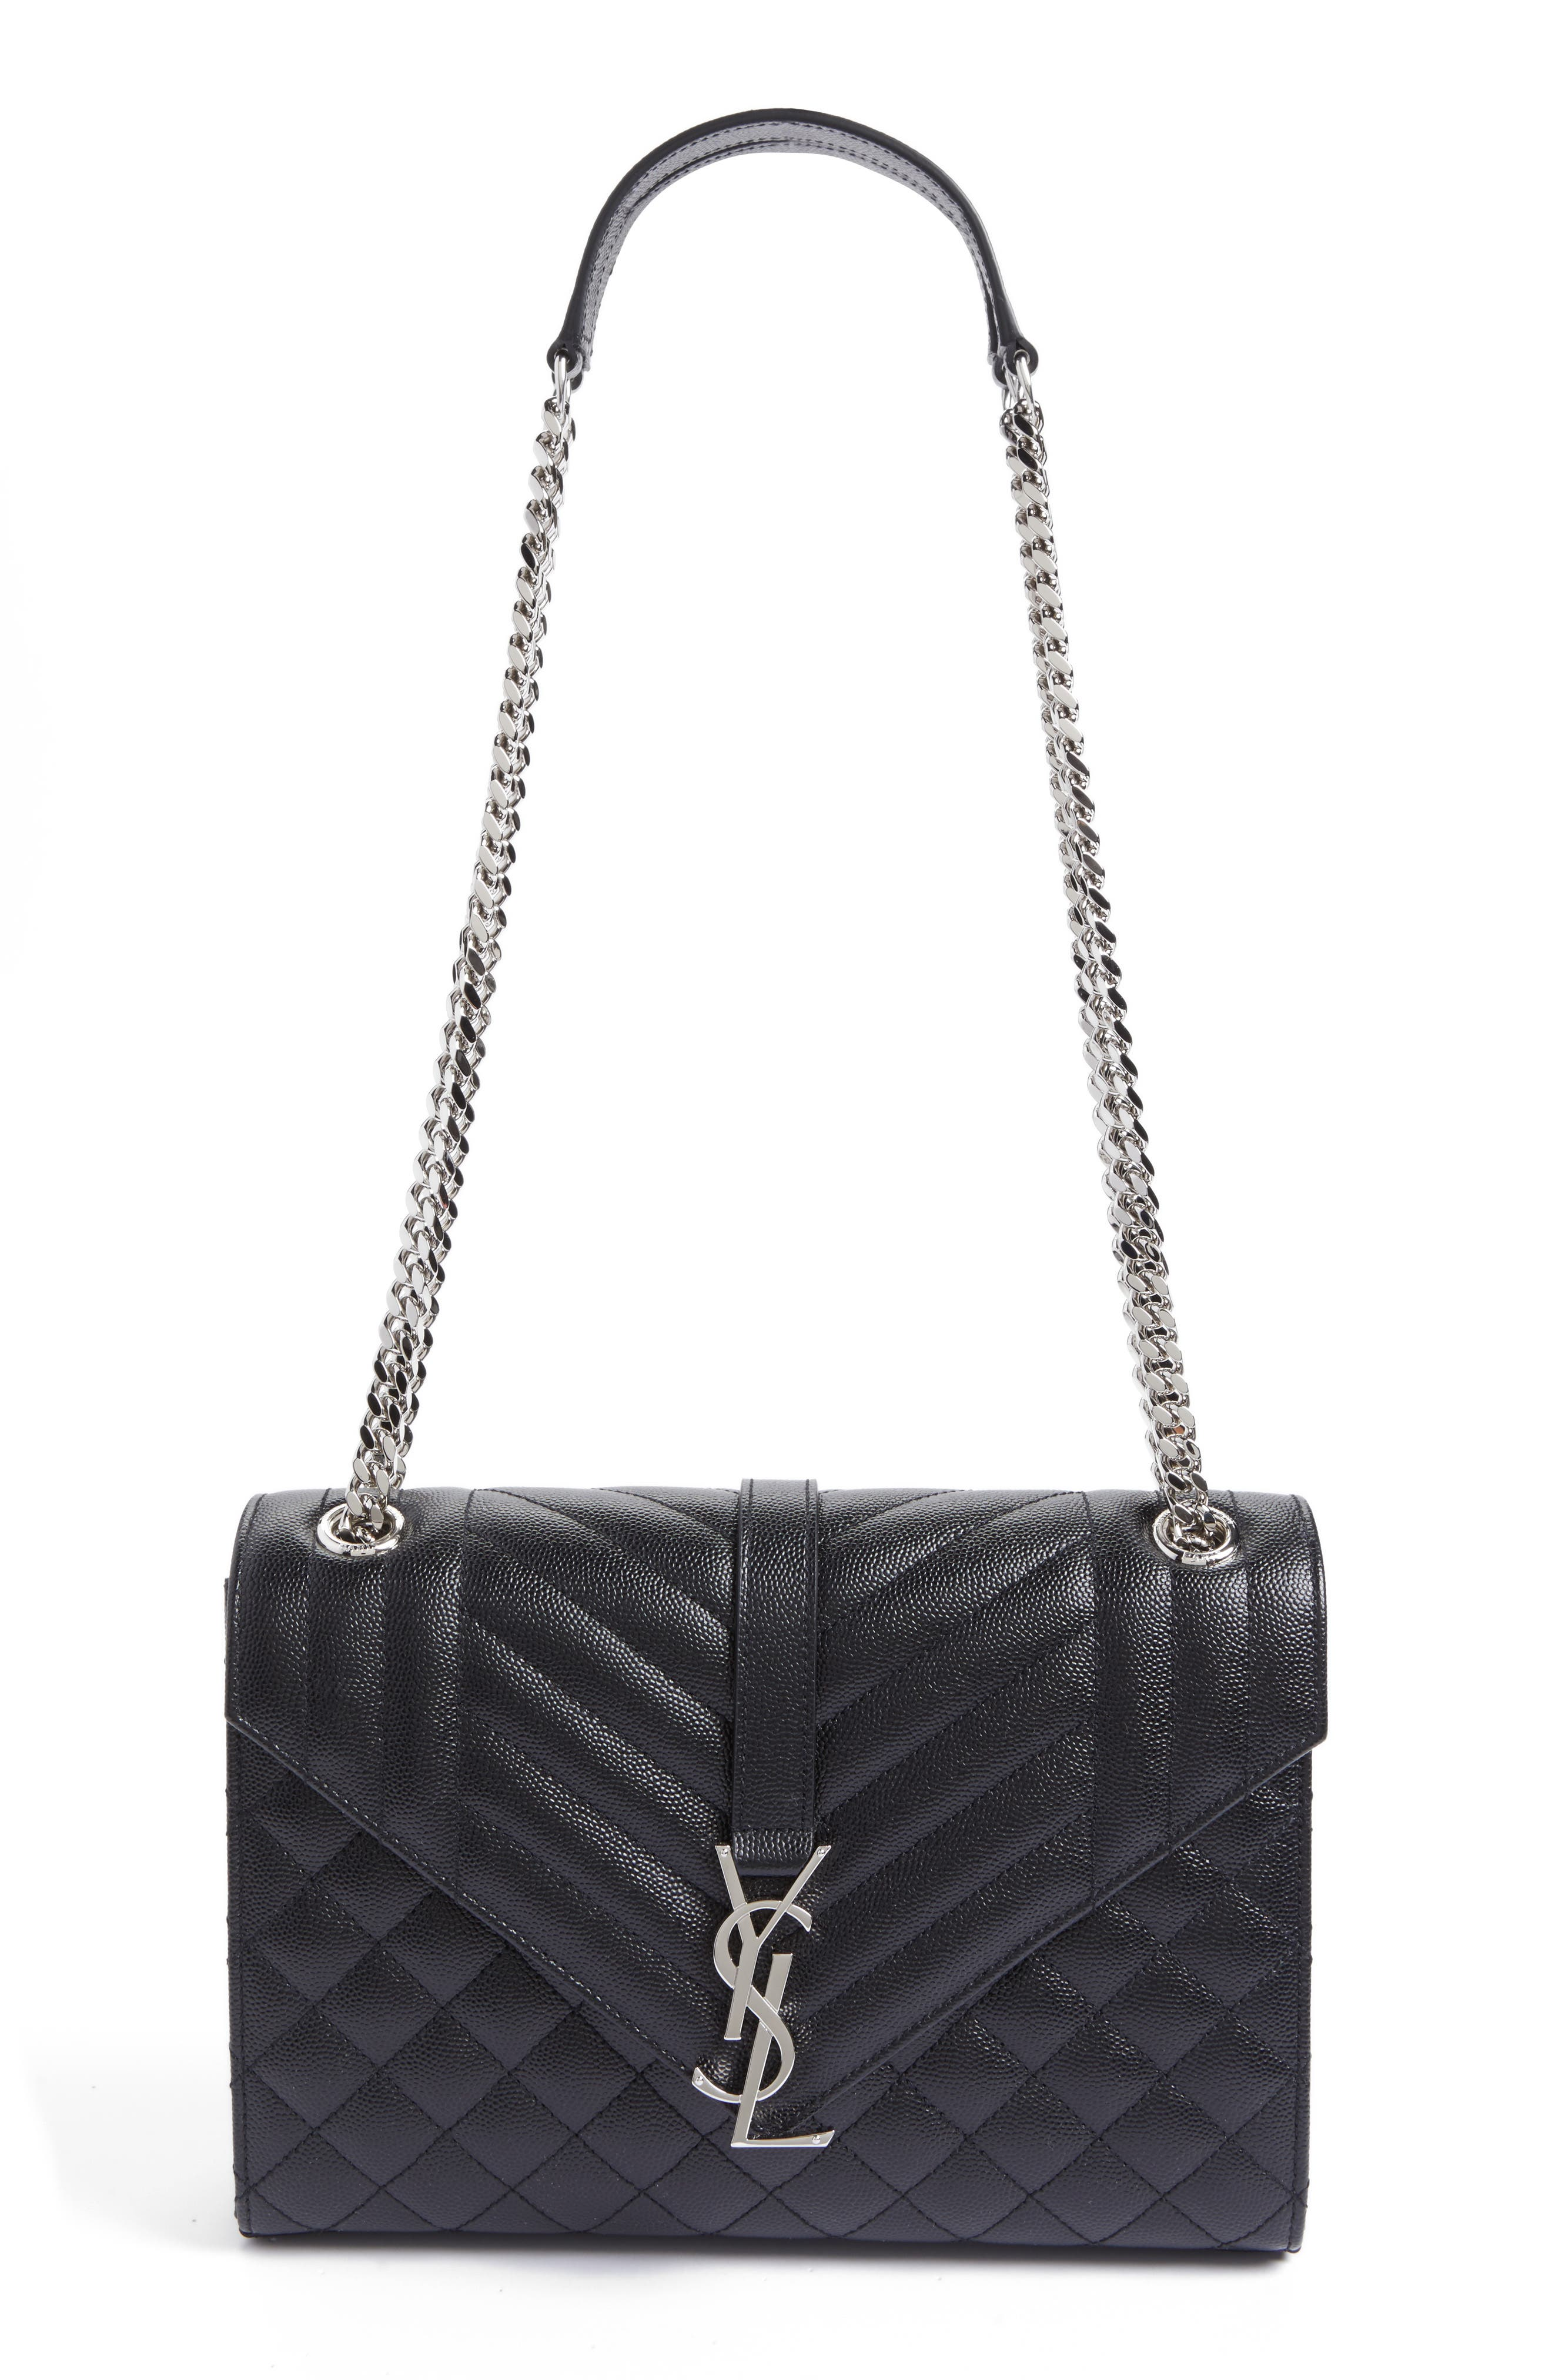 Medium Monogram Quilted Leather Shoulder Bag,                         Main,                         color, NERO